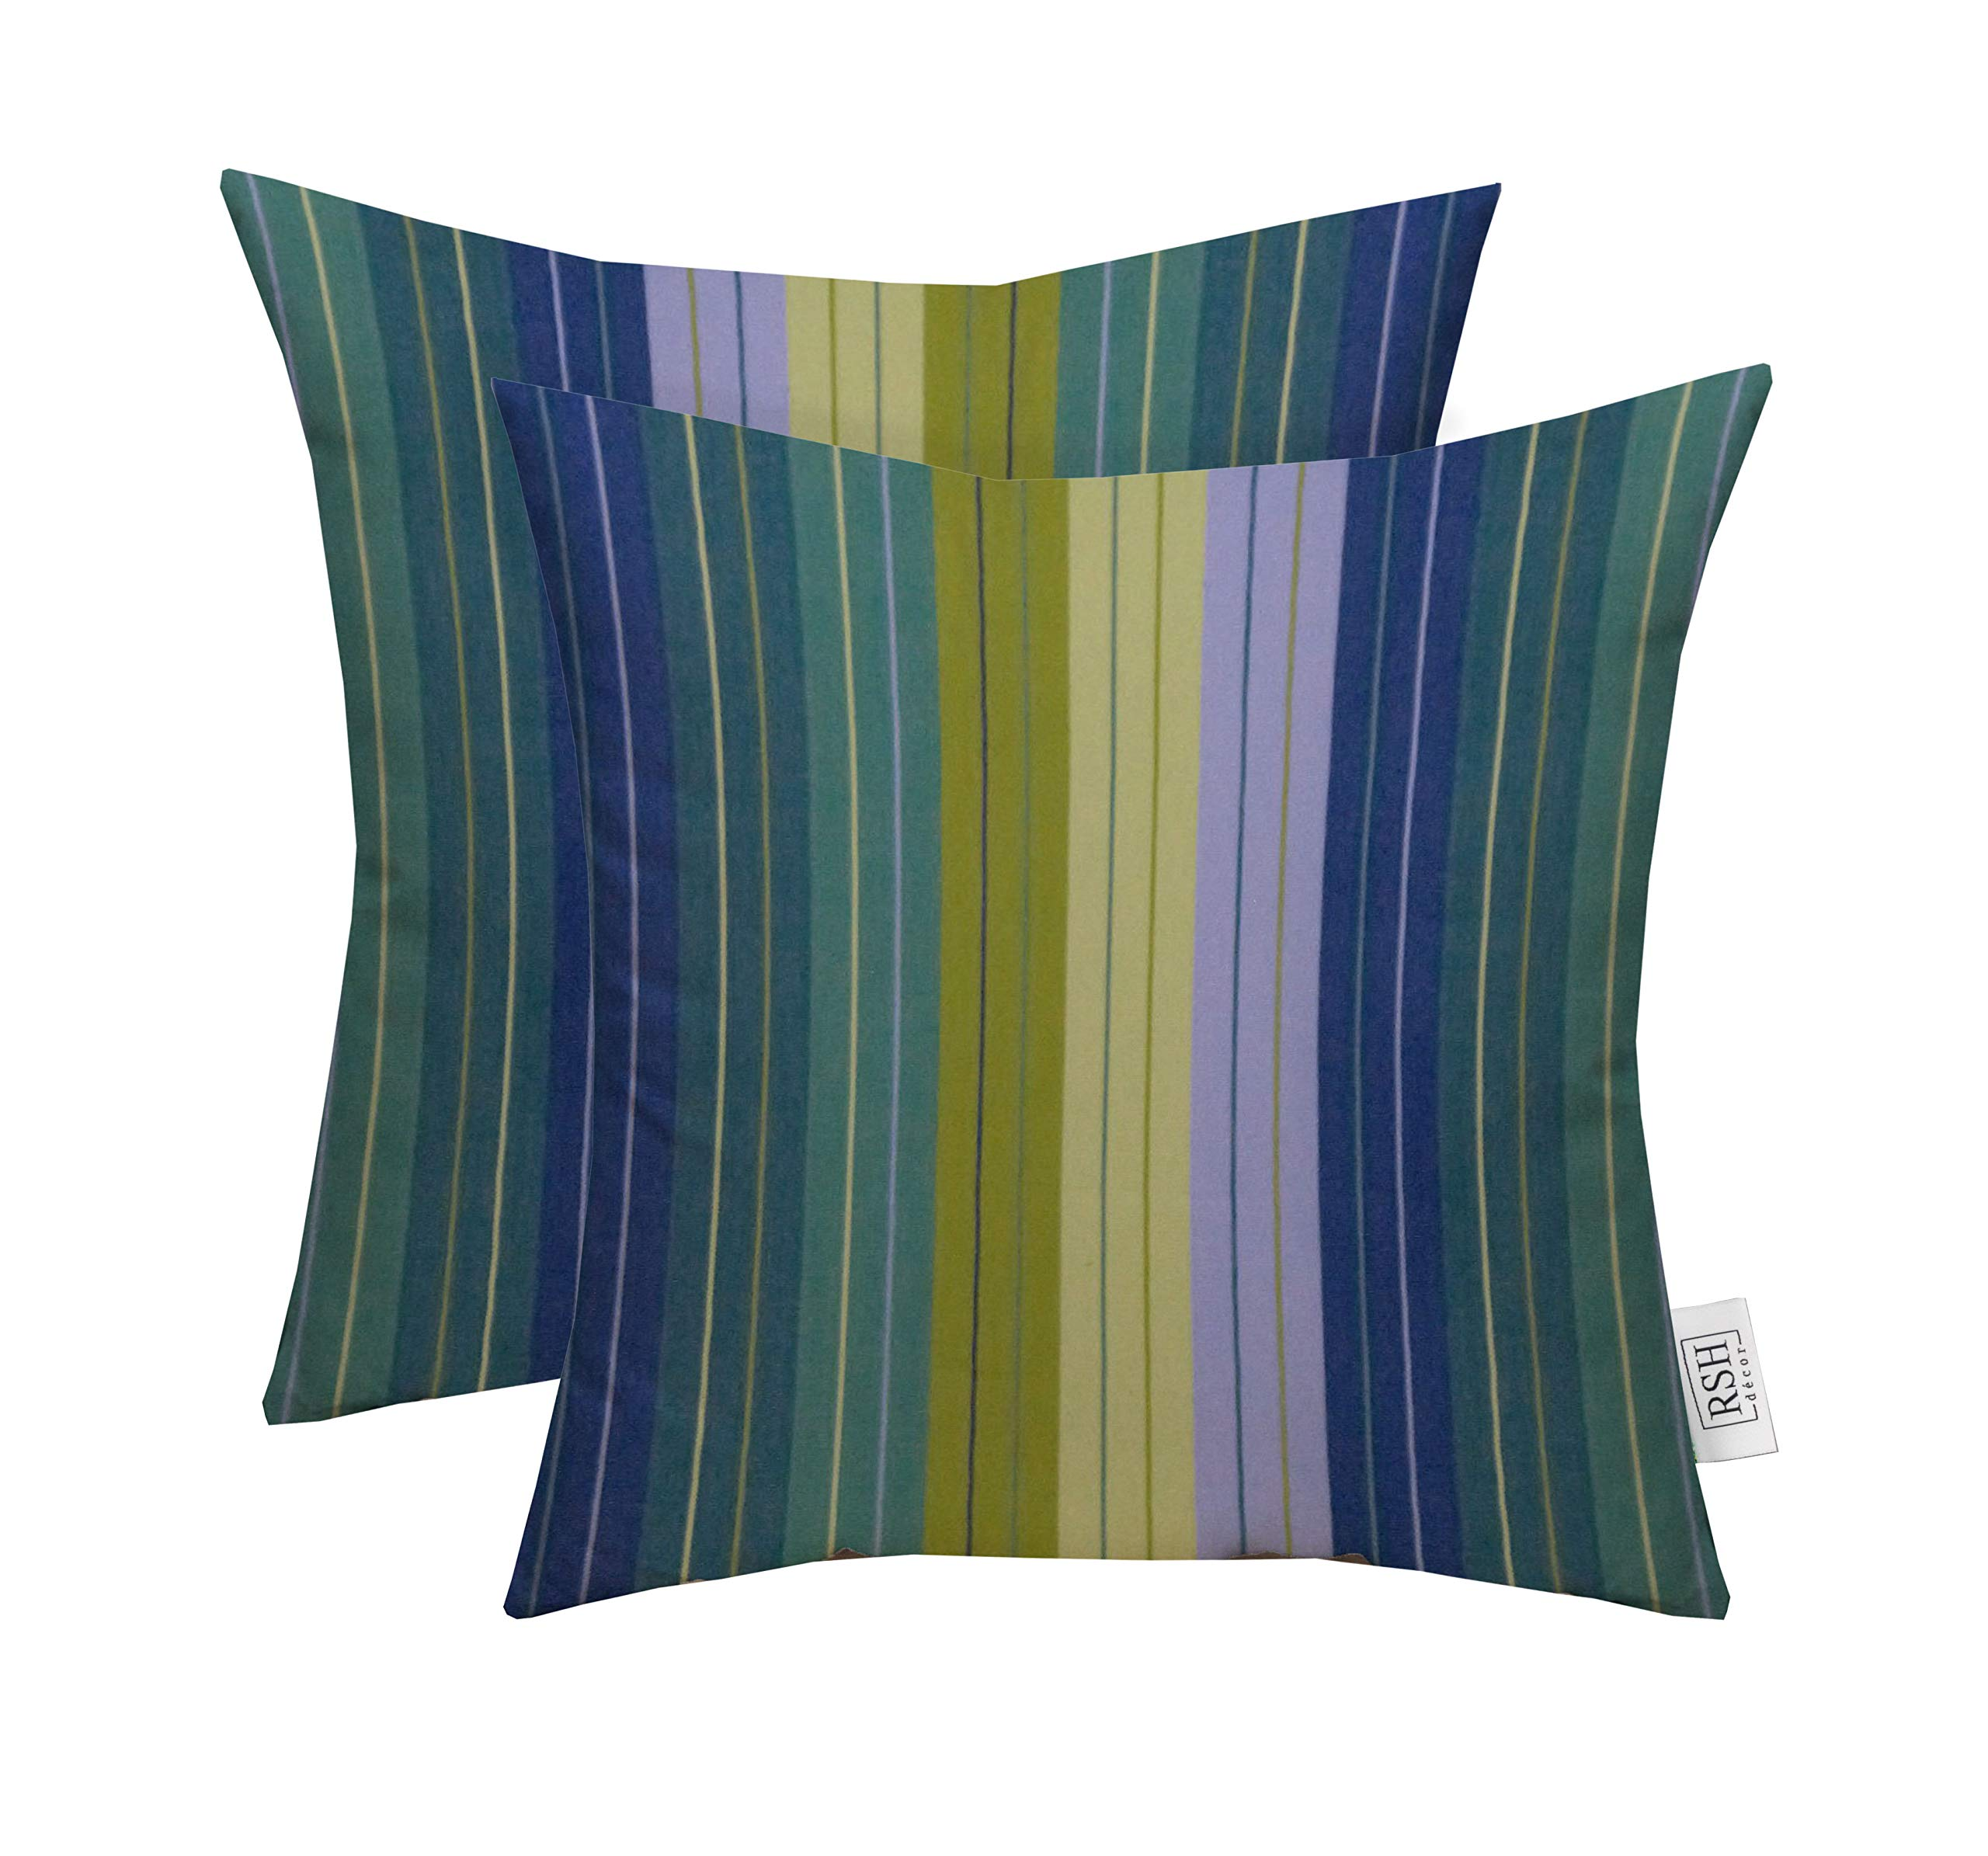 RSH Décor Set of 2 Indoor Outdoor Decorative Square Throw Pillows Made of Sunbrella Seville Seaside (20'' x 20'')